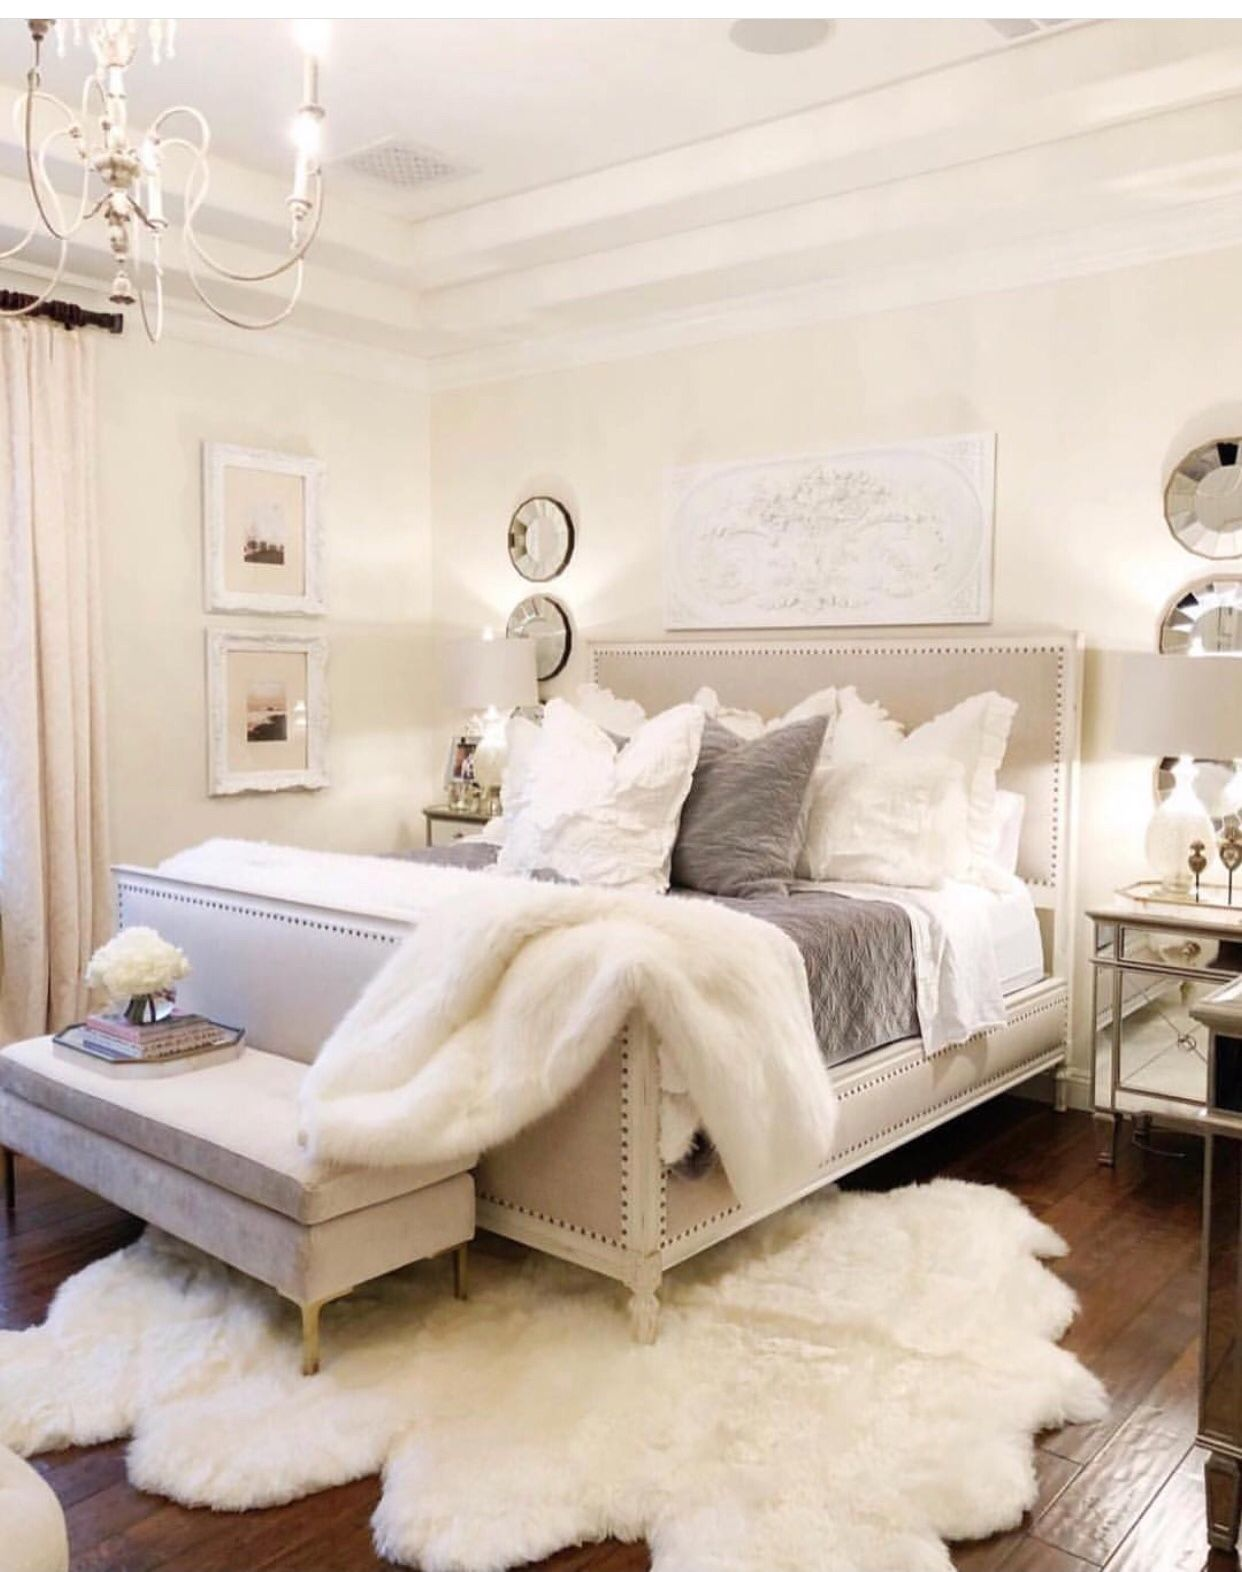 Pin By Kristen On Home Small Room Bedroom Bedroom Ideas For Small Rooms Women Comfy Bedroom